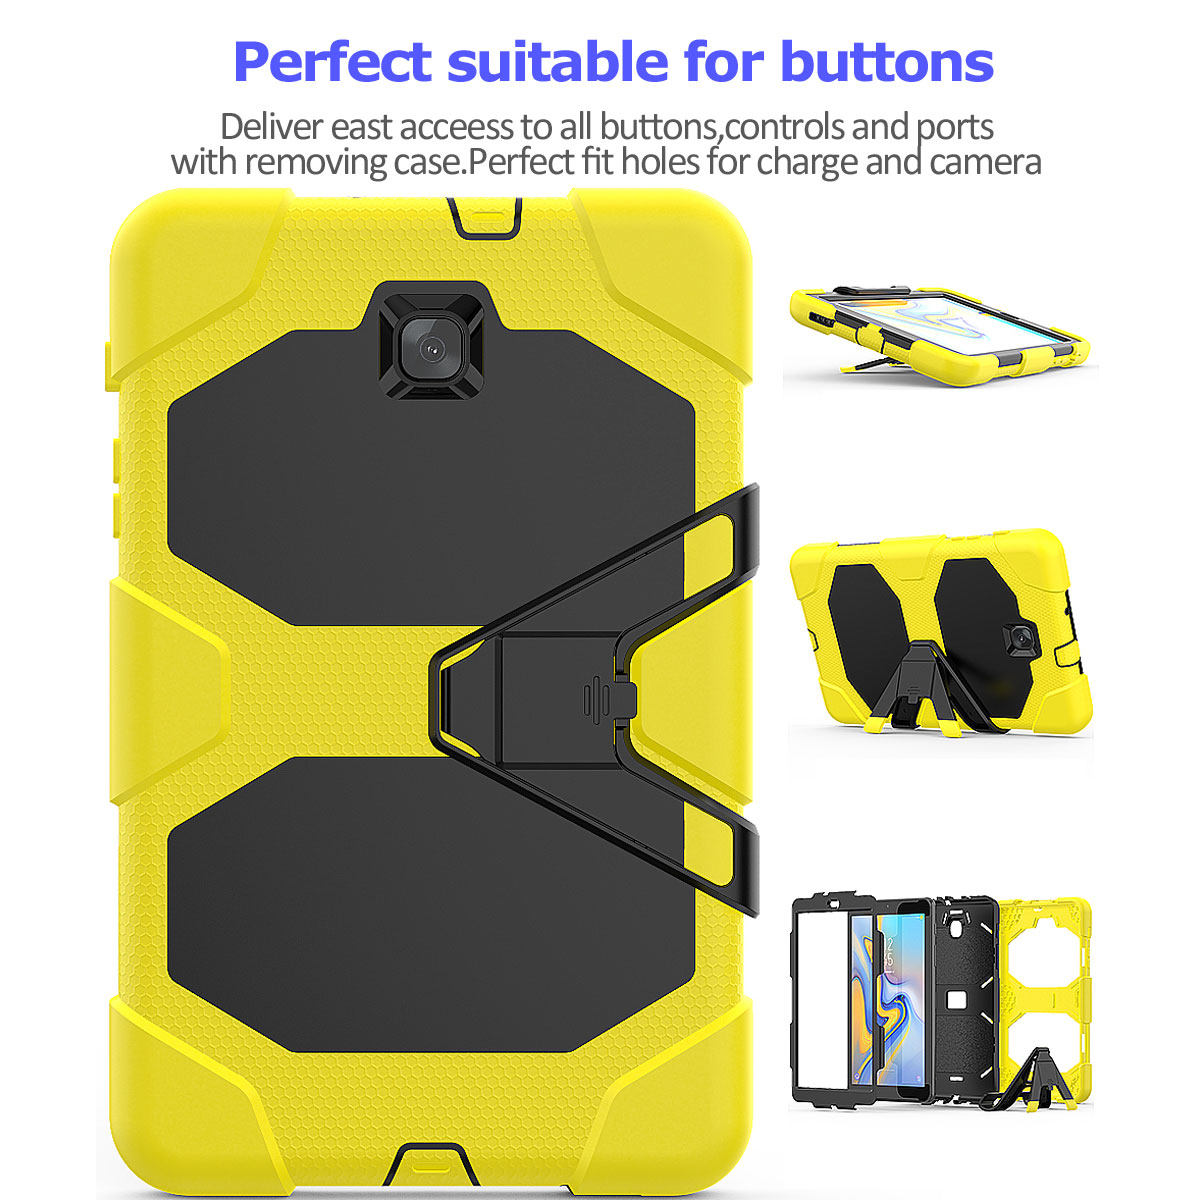 Rugged-Hard-Case-For-Samsung-Galaxy-Tab-A-8-0-2018-SM-T387-with-Screen-Protector thumbnail 74